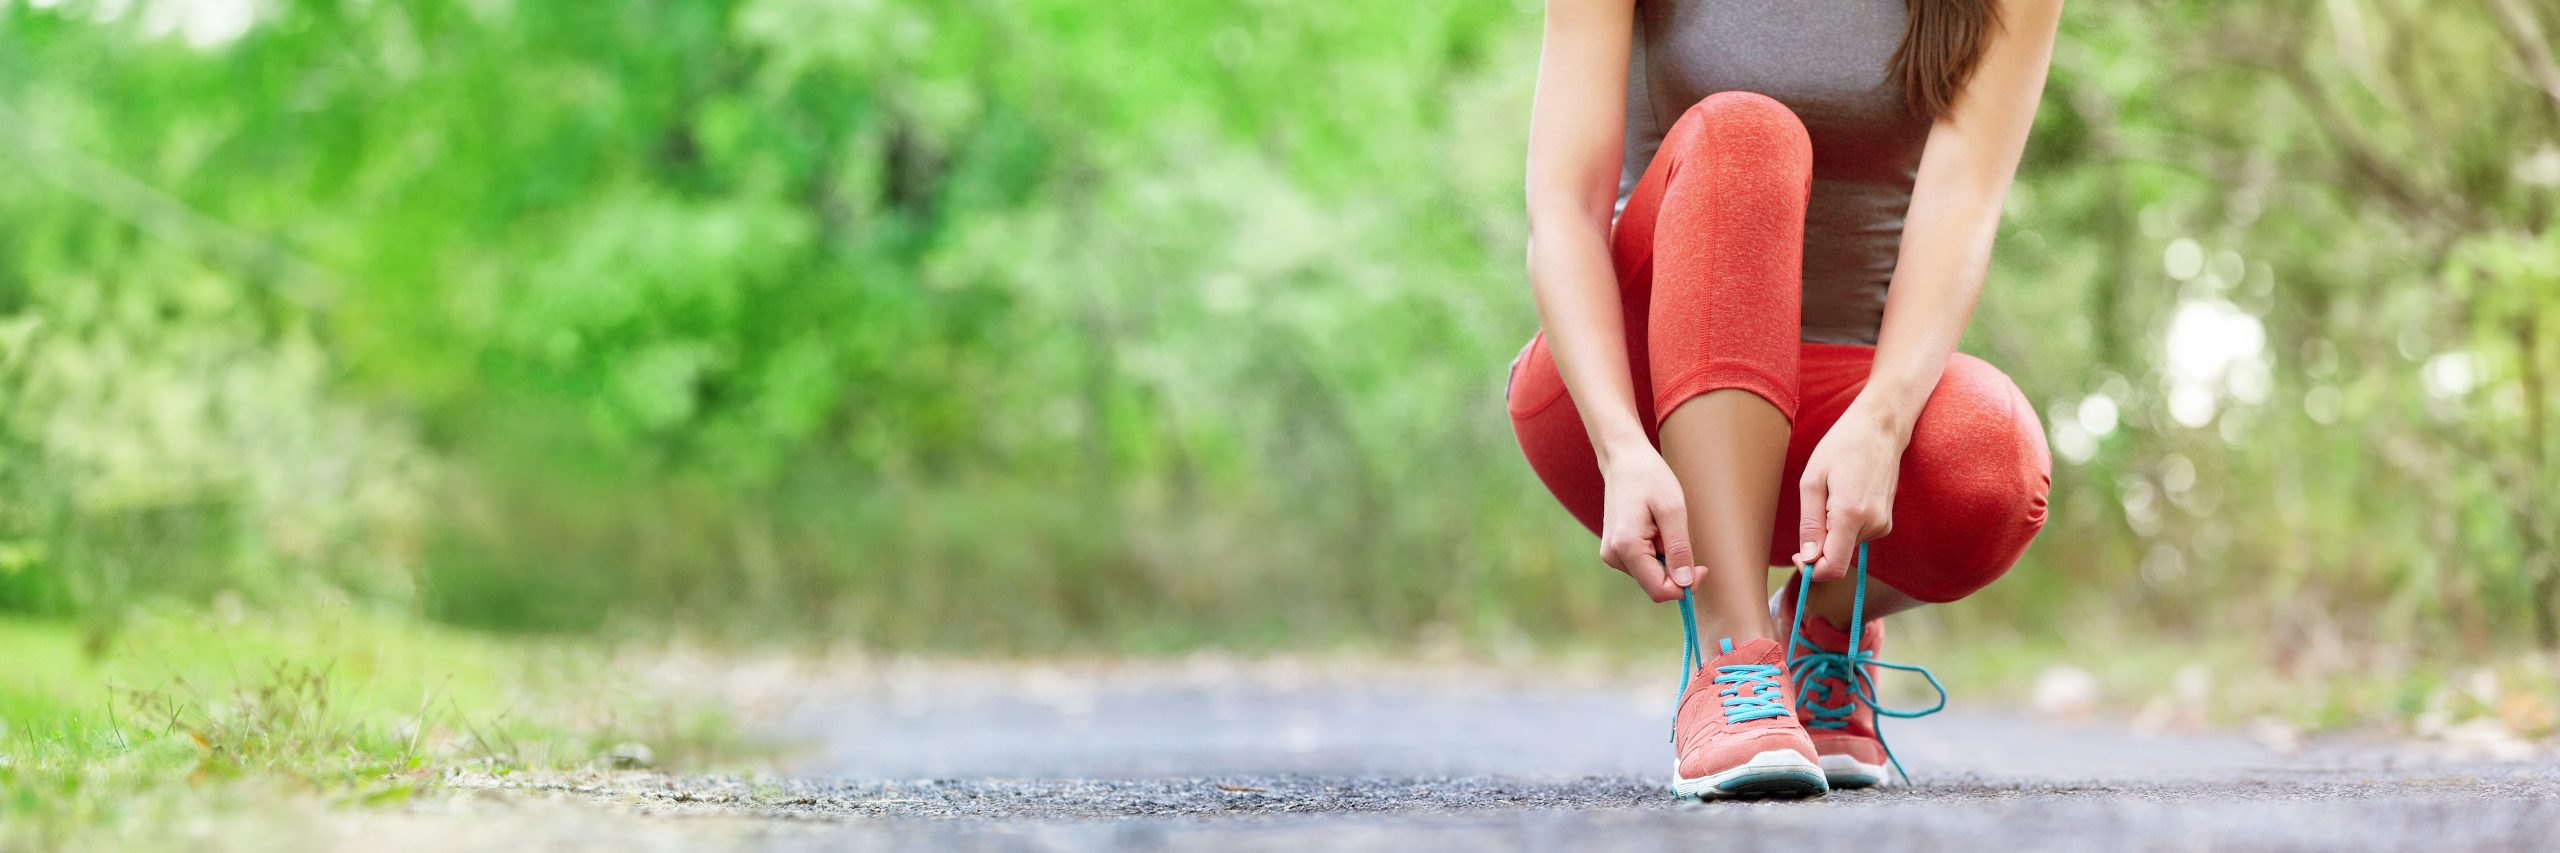 woman tying her shoe to prepare for exercising